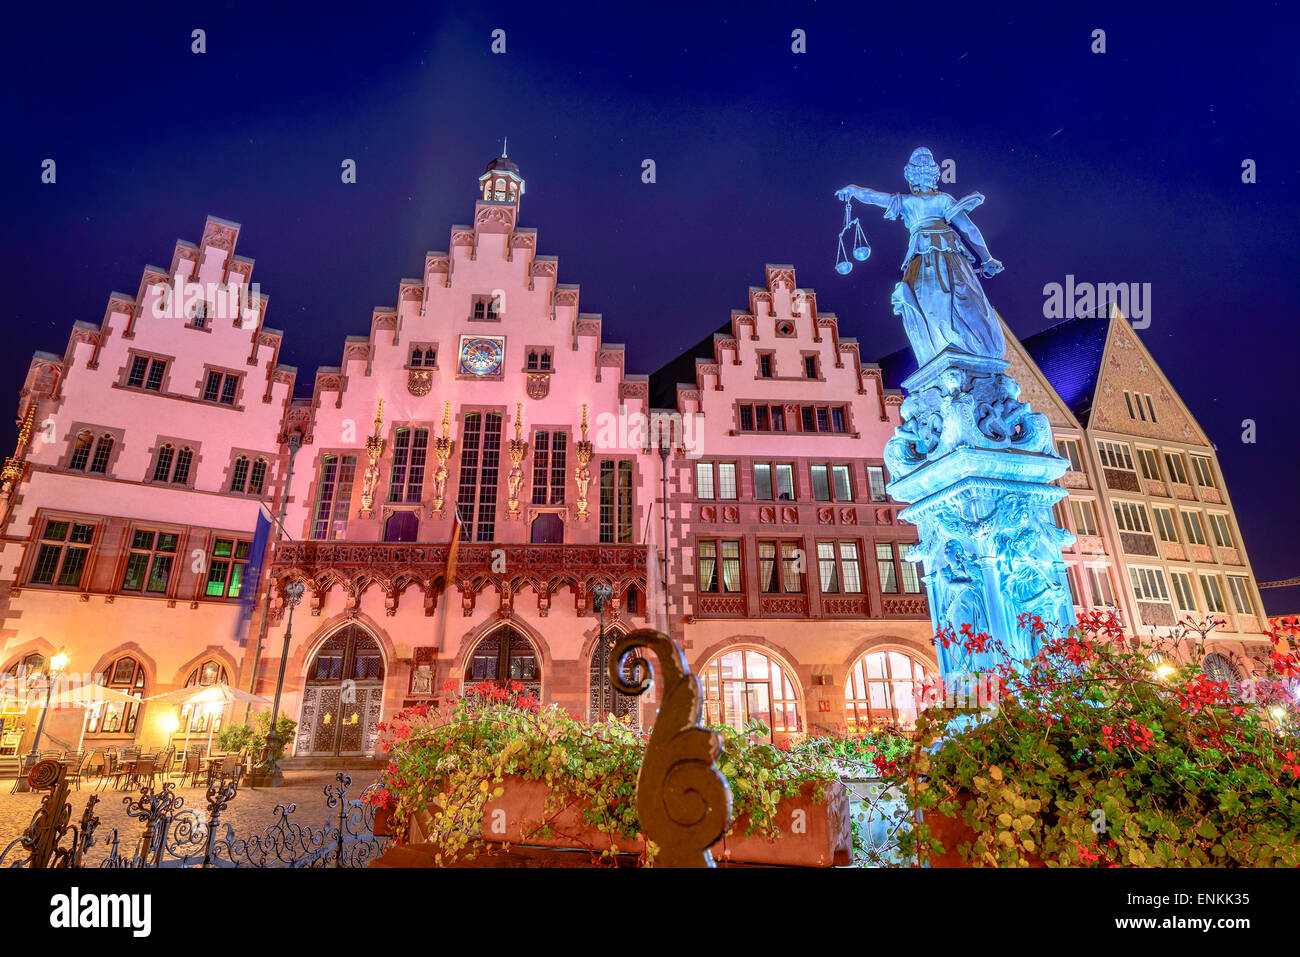 Francfort, en Allemagne, la place de la ville. Photo Stock